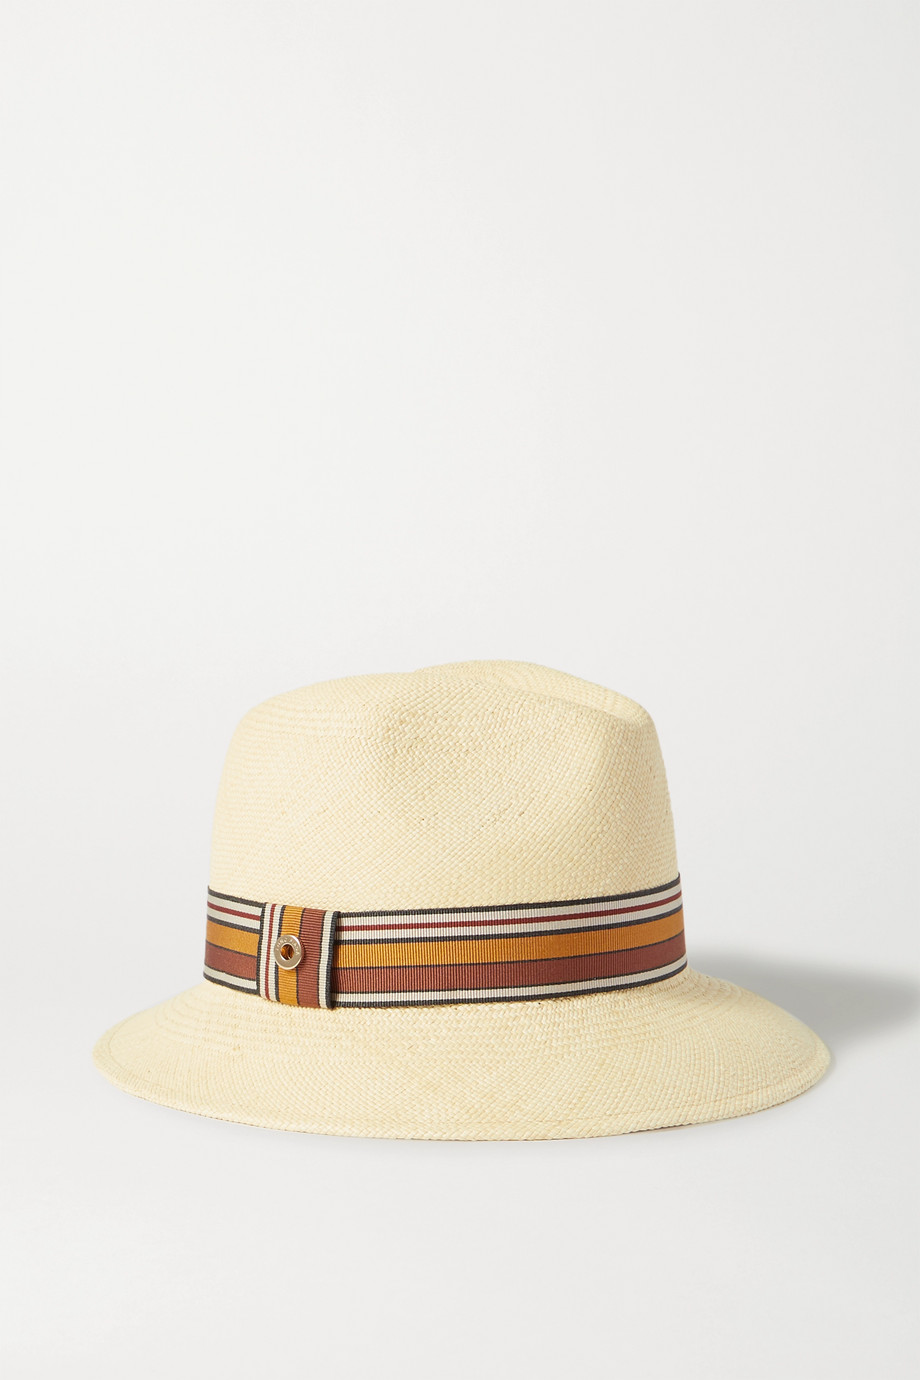 Loro Piana The Suitcase Stripe Ingrid grosgrain-trimmed toquilla straw Panama hat